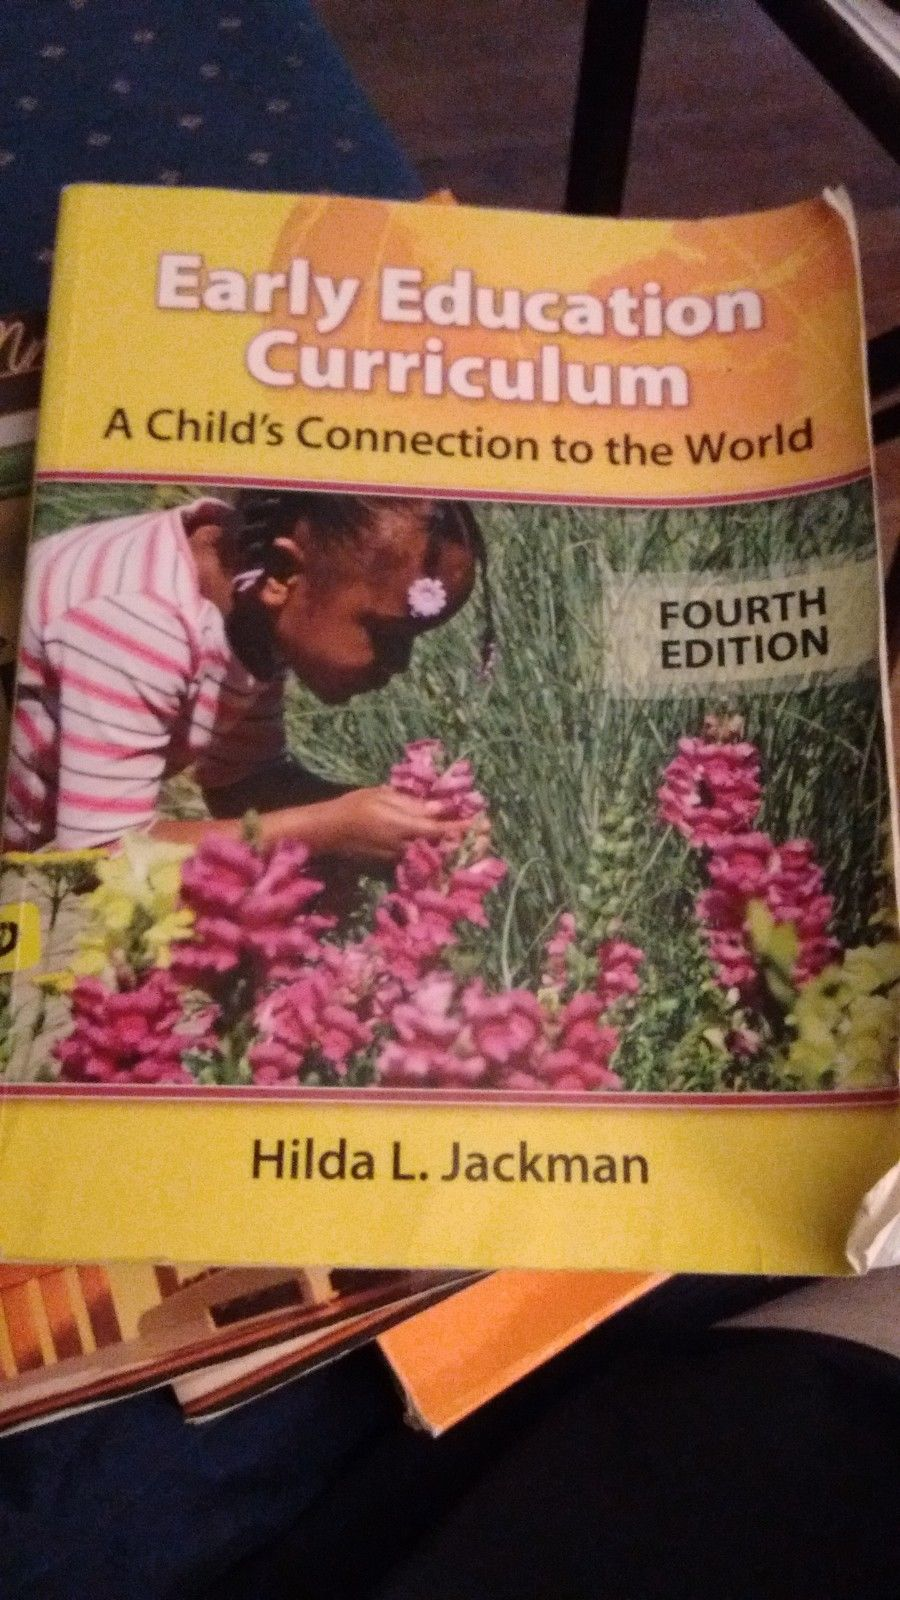 Early Education Curriculum: A Child's Connection to the World, H. Jackman, 2009